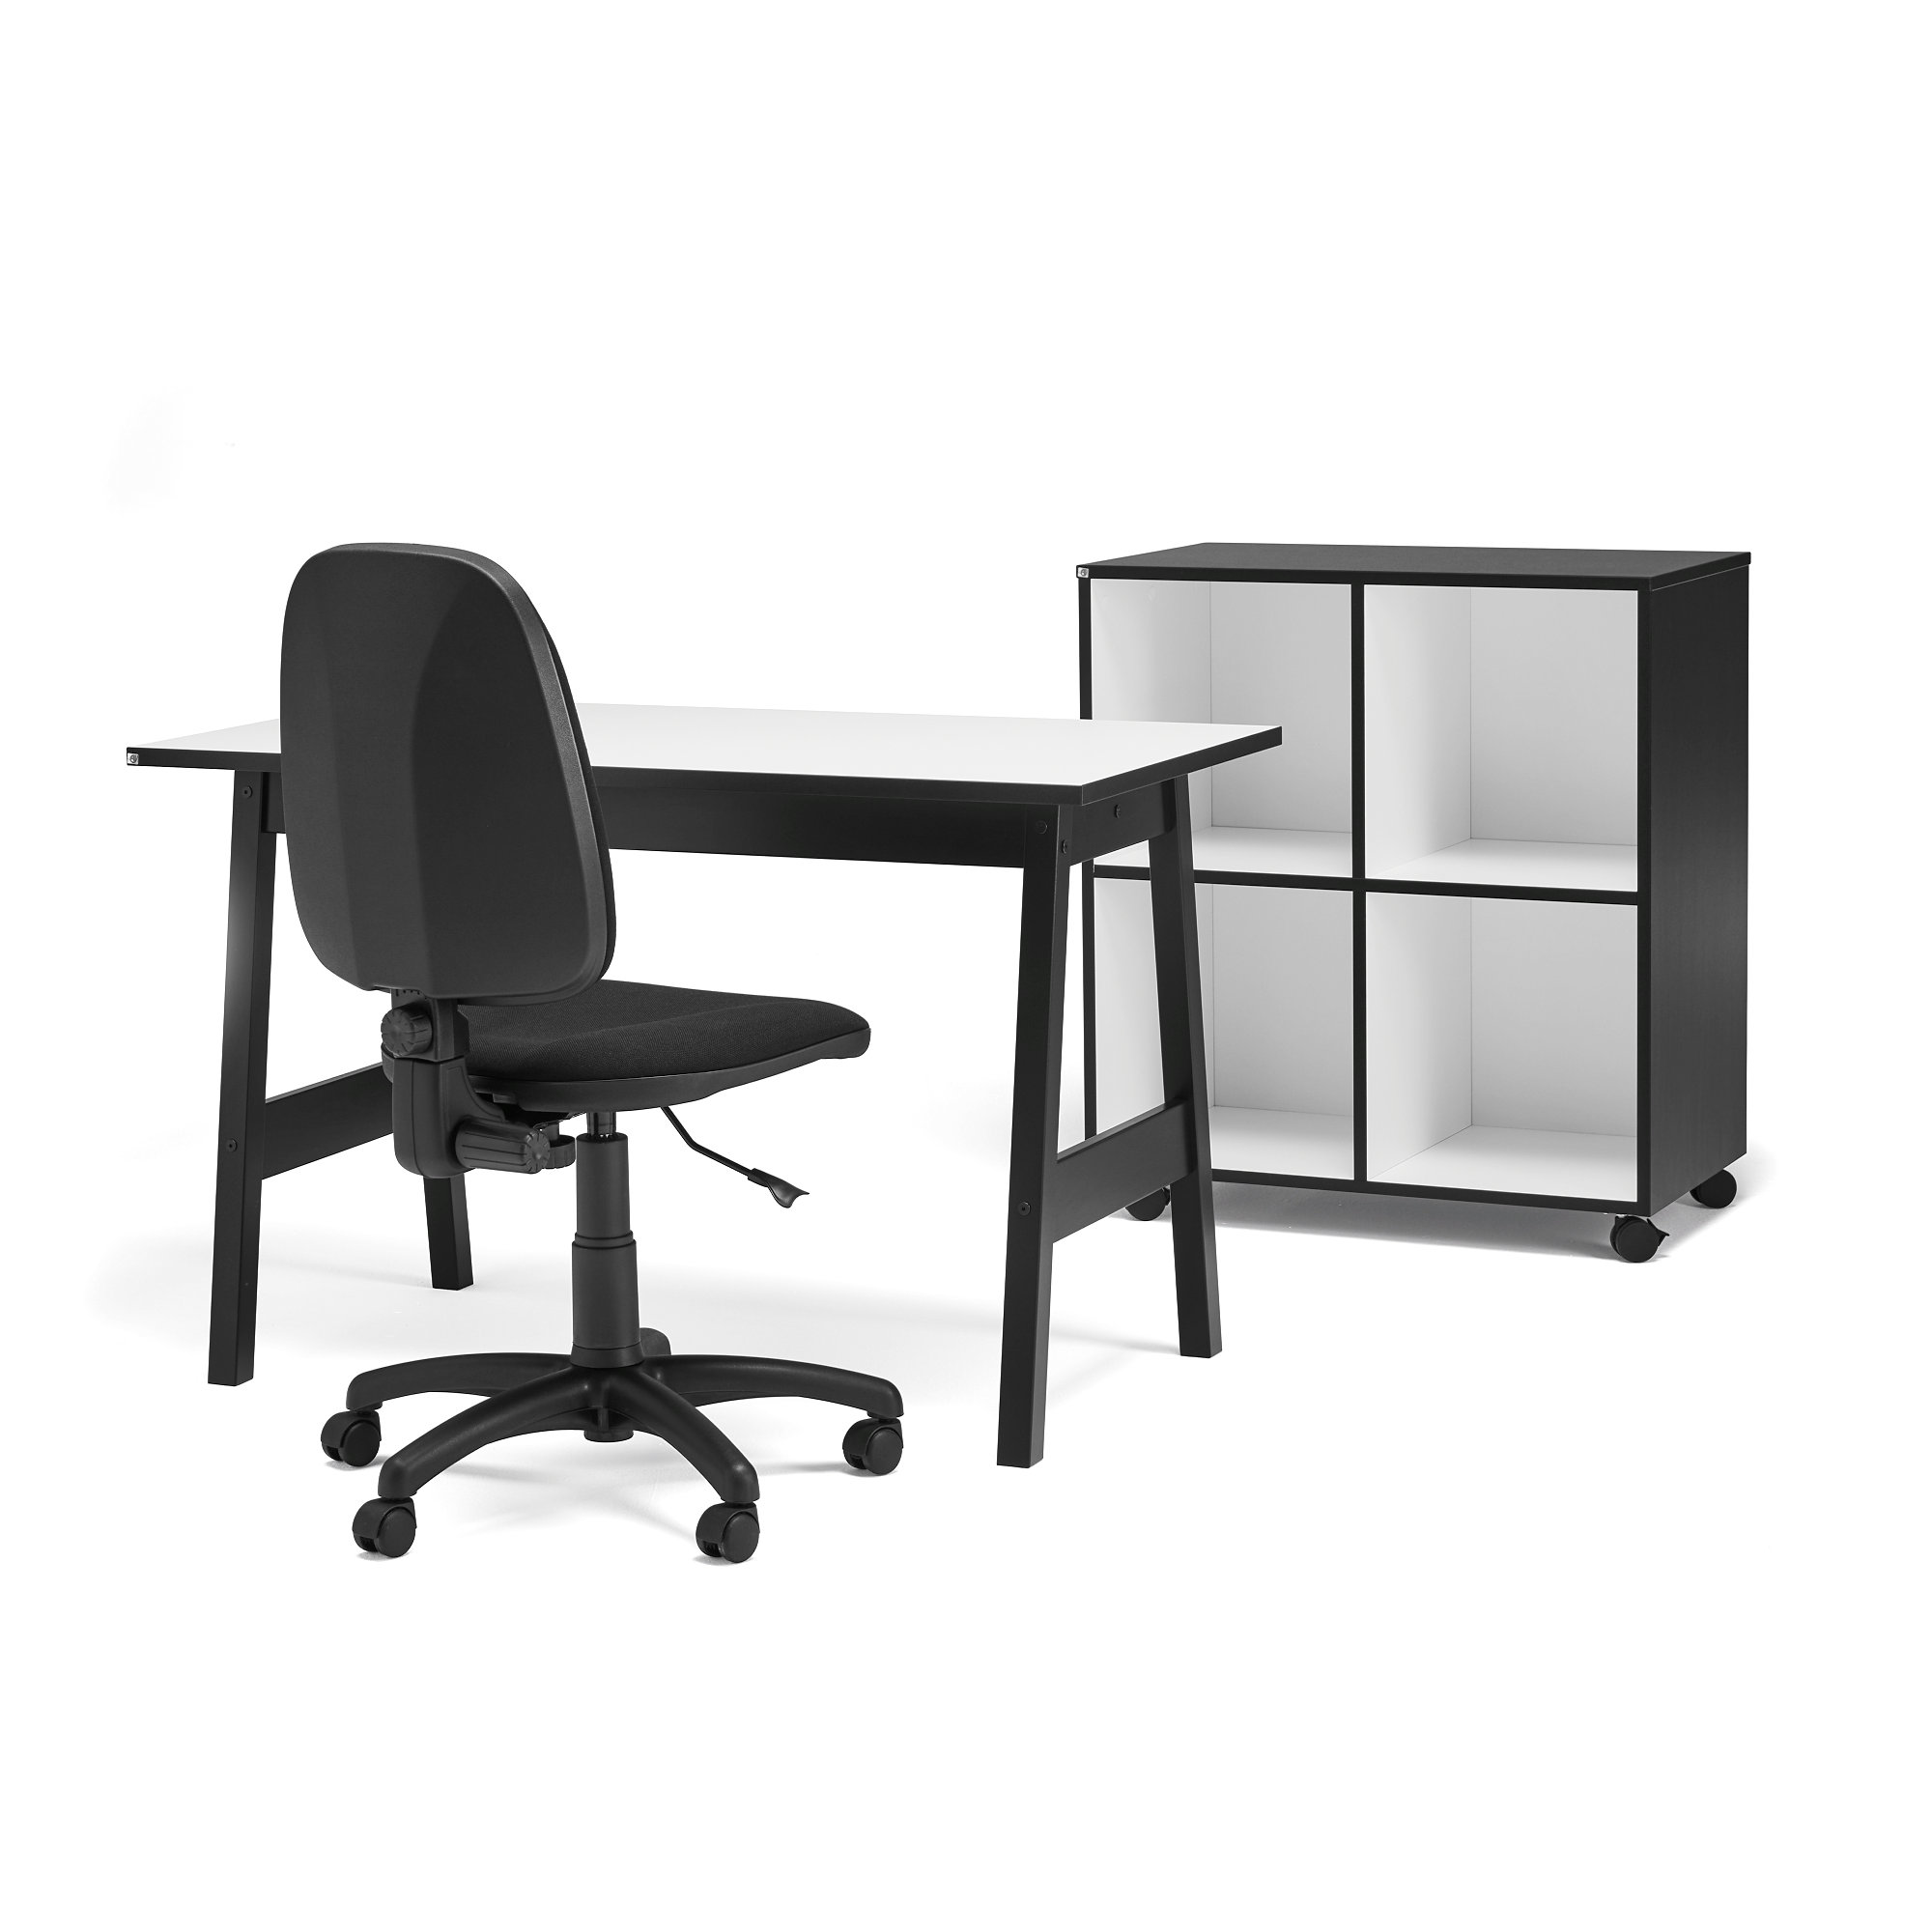 Office Chair Deals Package Deal Desk Nomad 43 Office Chair Dover 43 Mobile